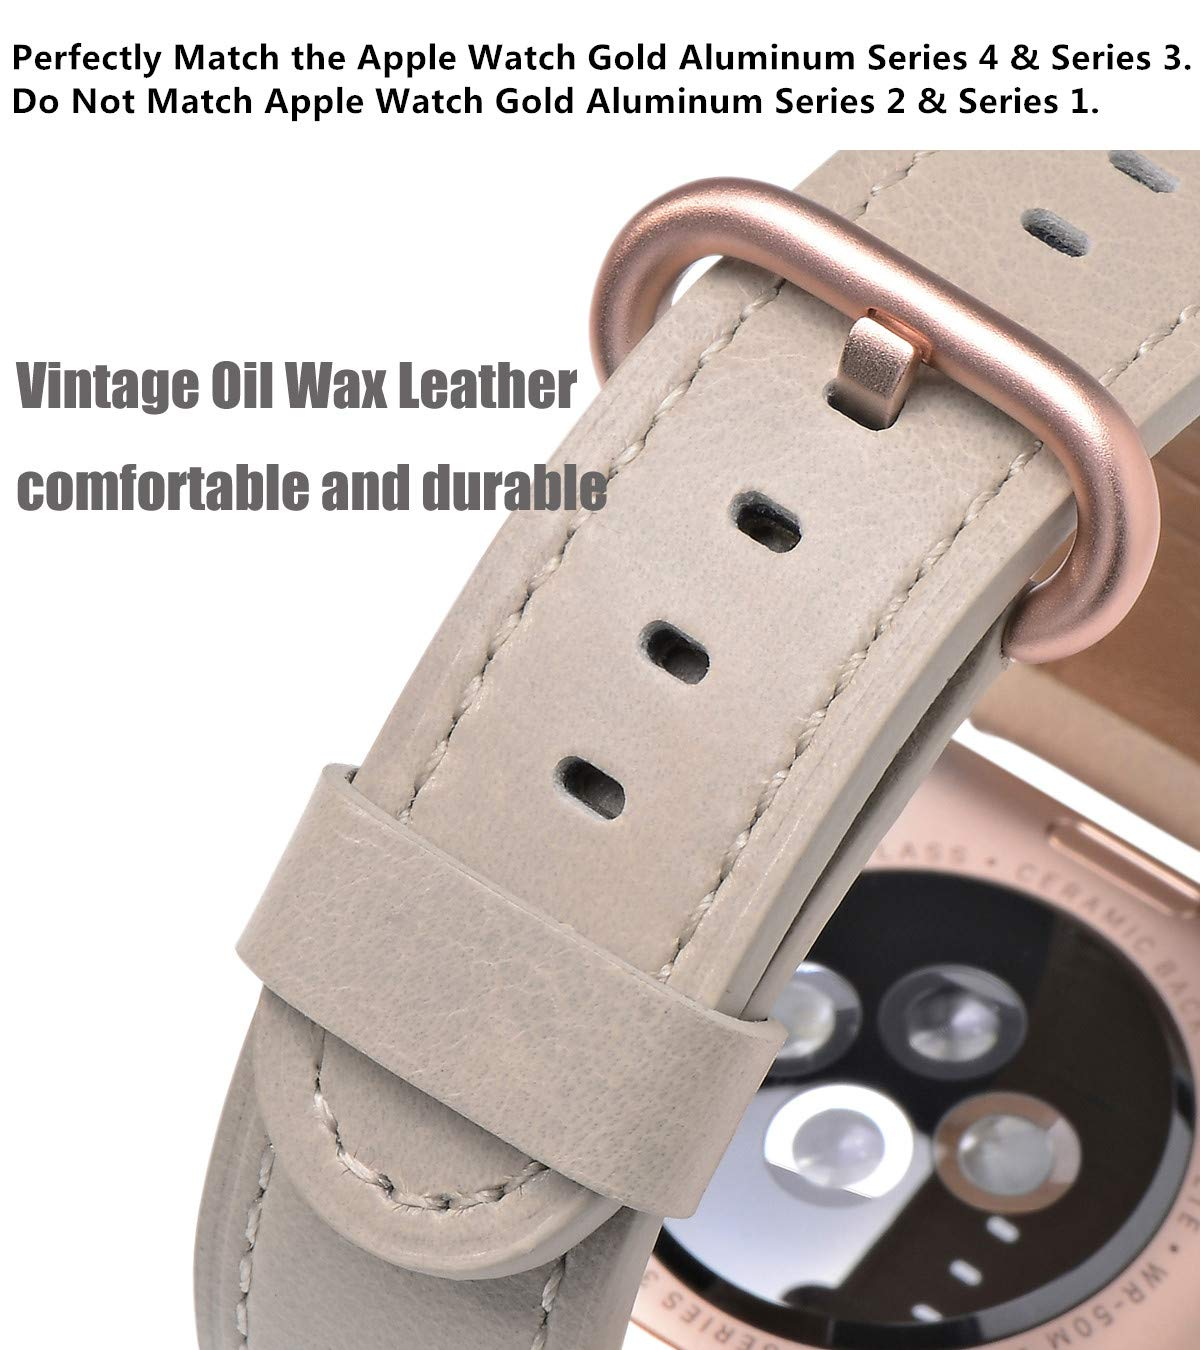 83a00ad3ff2f Amazon.com  JSGJMY Compatible for Iwatch Band 38mm 40mm S M Women Genuine  Leather Loop Replacement Strap Compatible for iWatch Series 4 (40mm) Series  3 2 1 ...